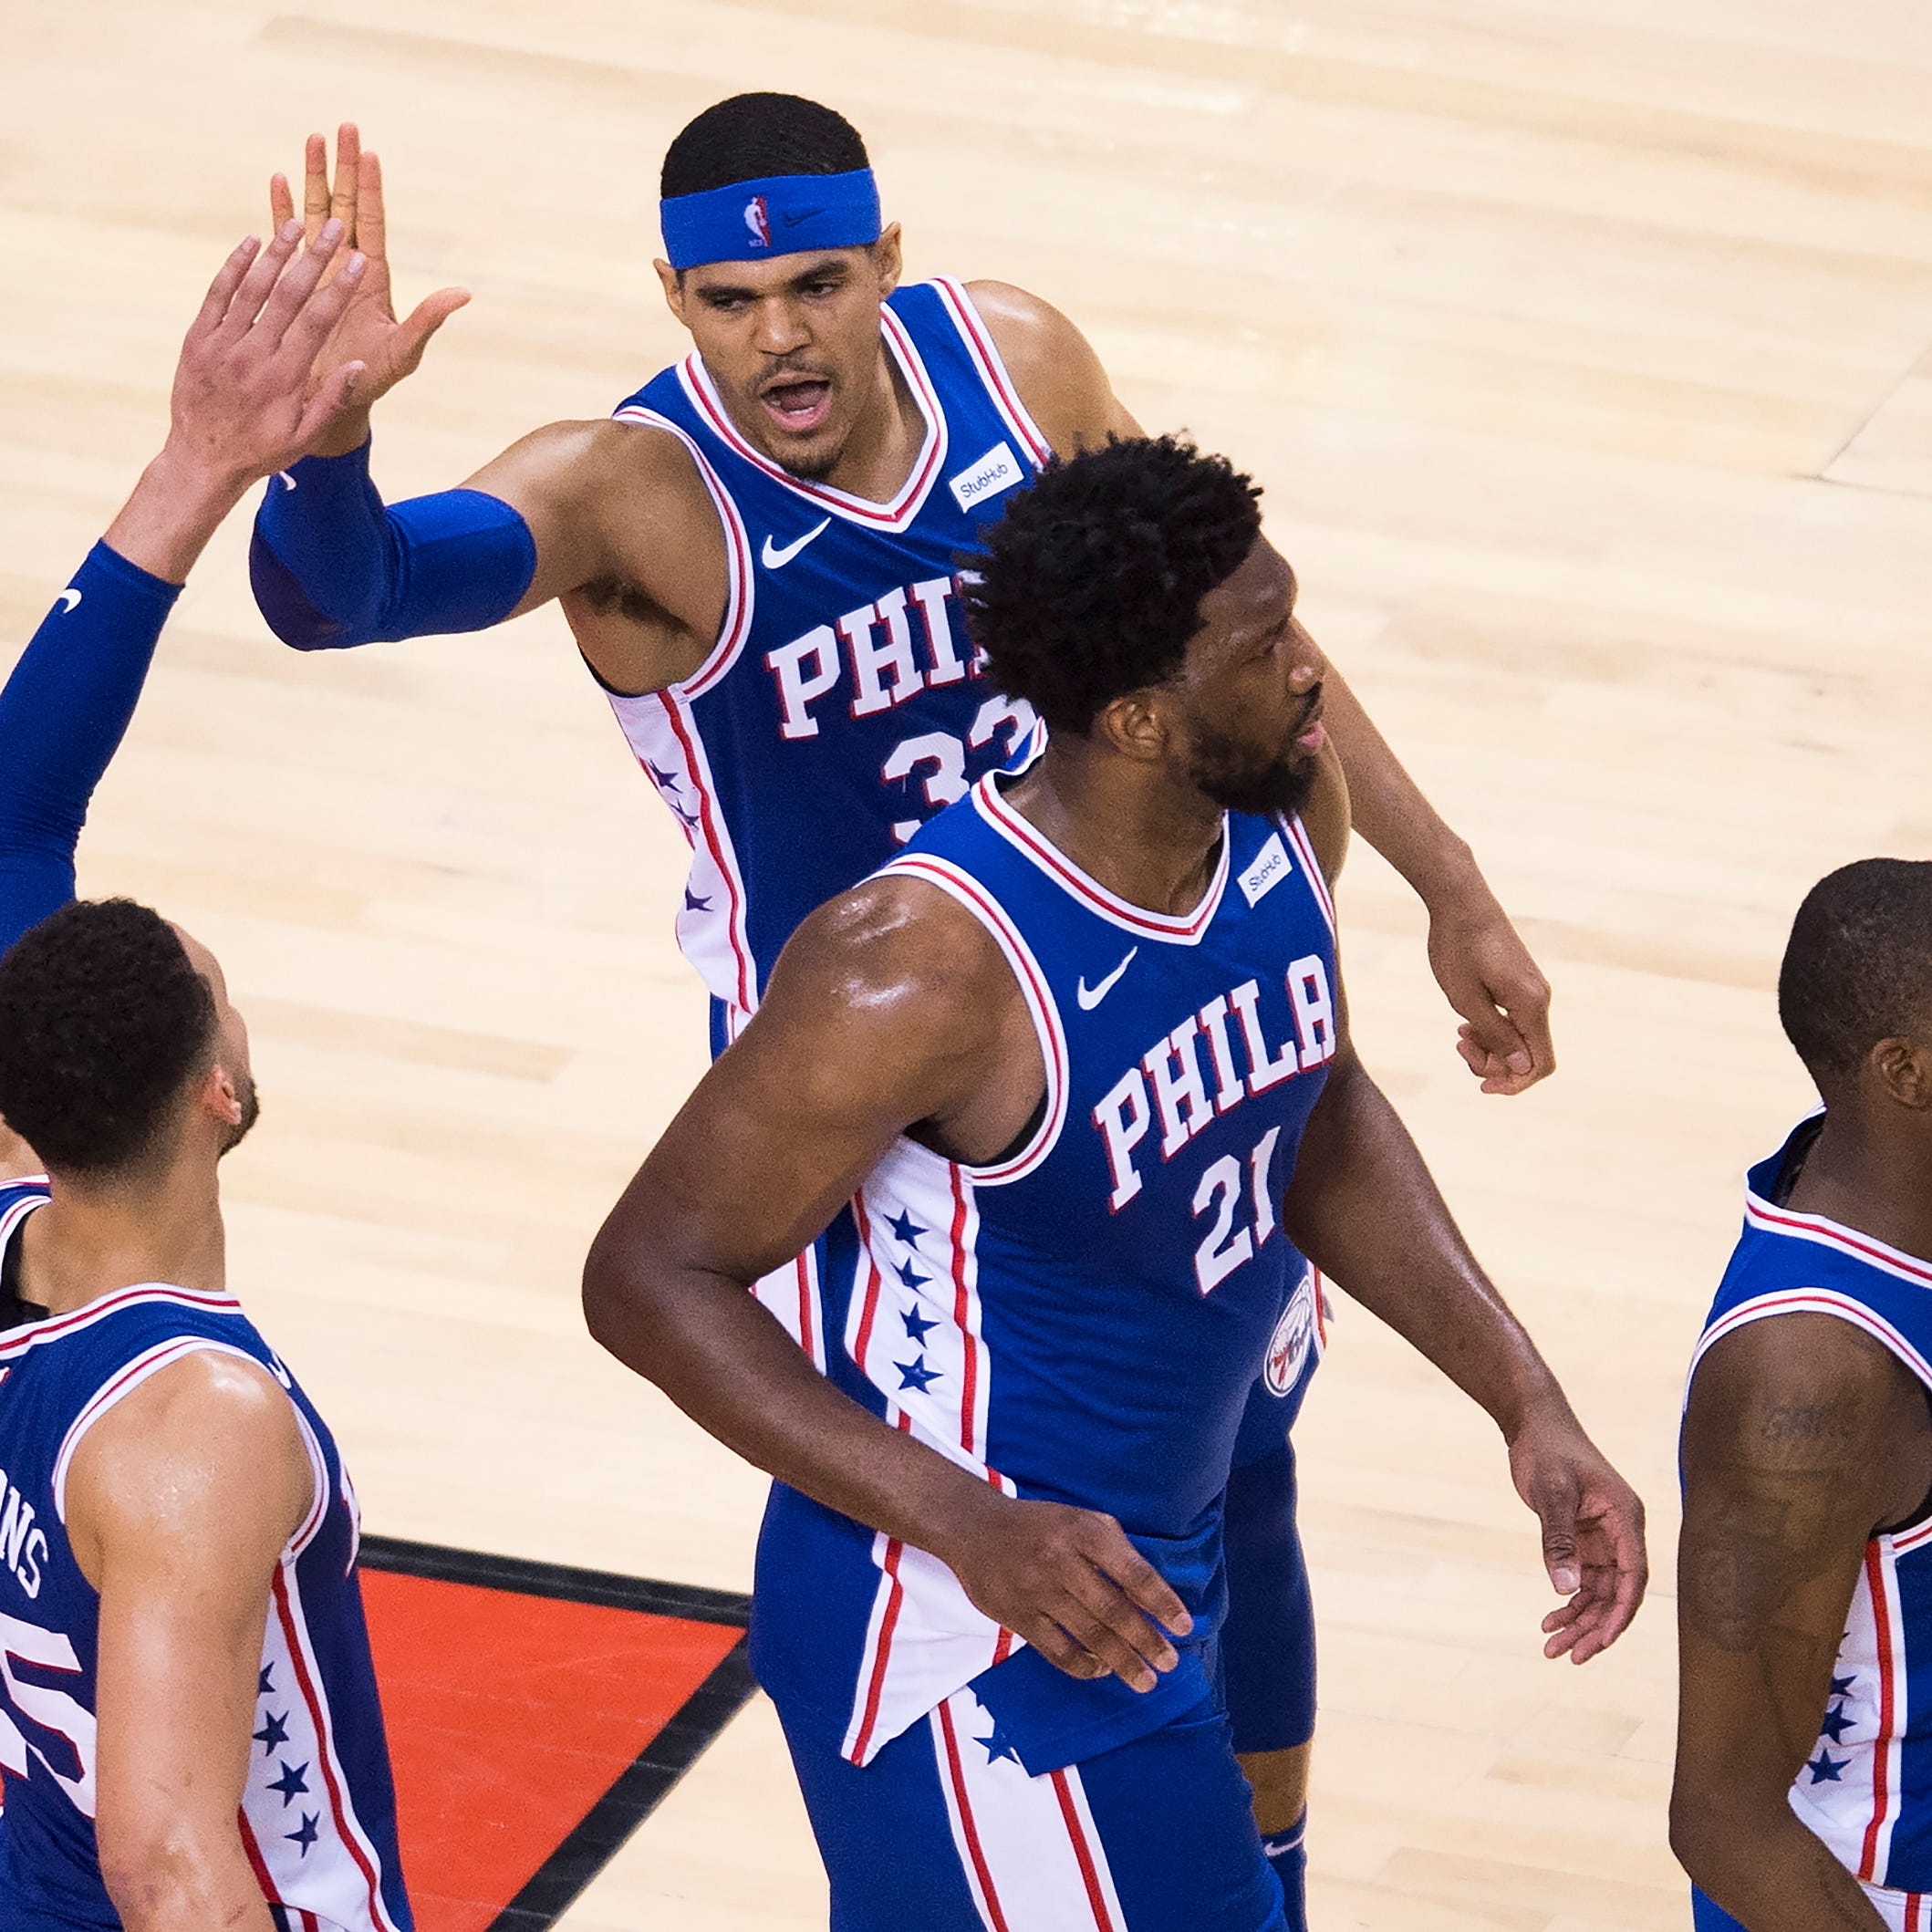 Monday's NBA playoffs: 76ers snap 14-game skid in Toronto, pull even in East semifinal